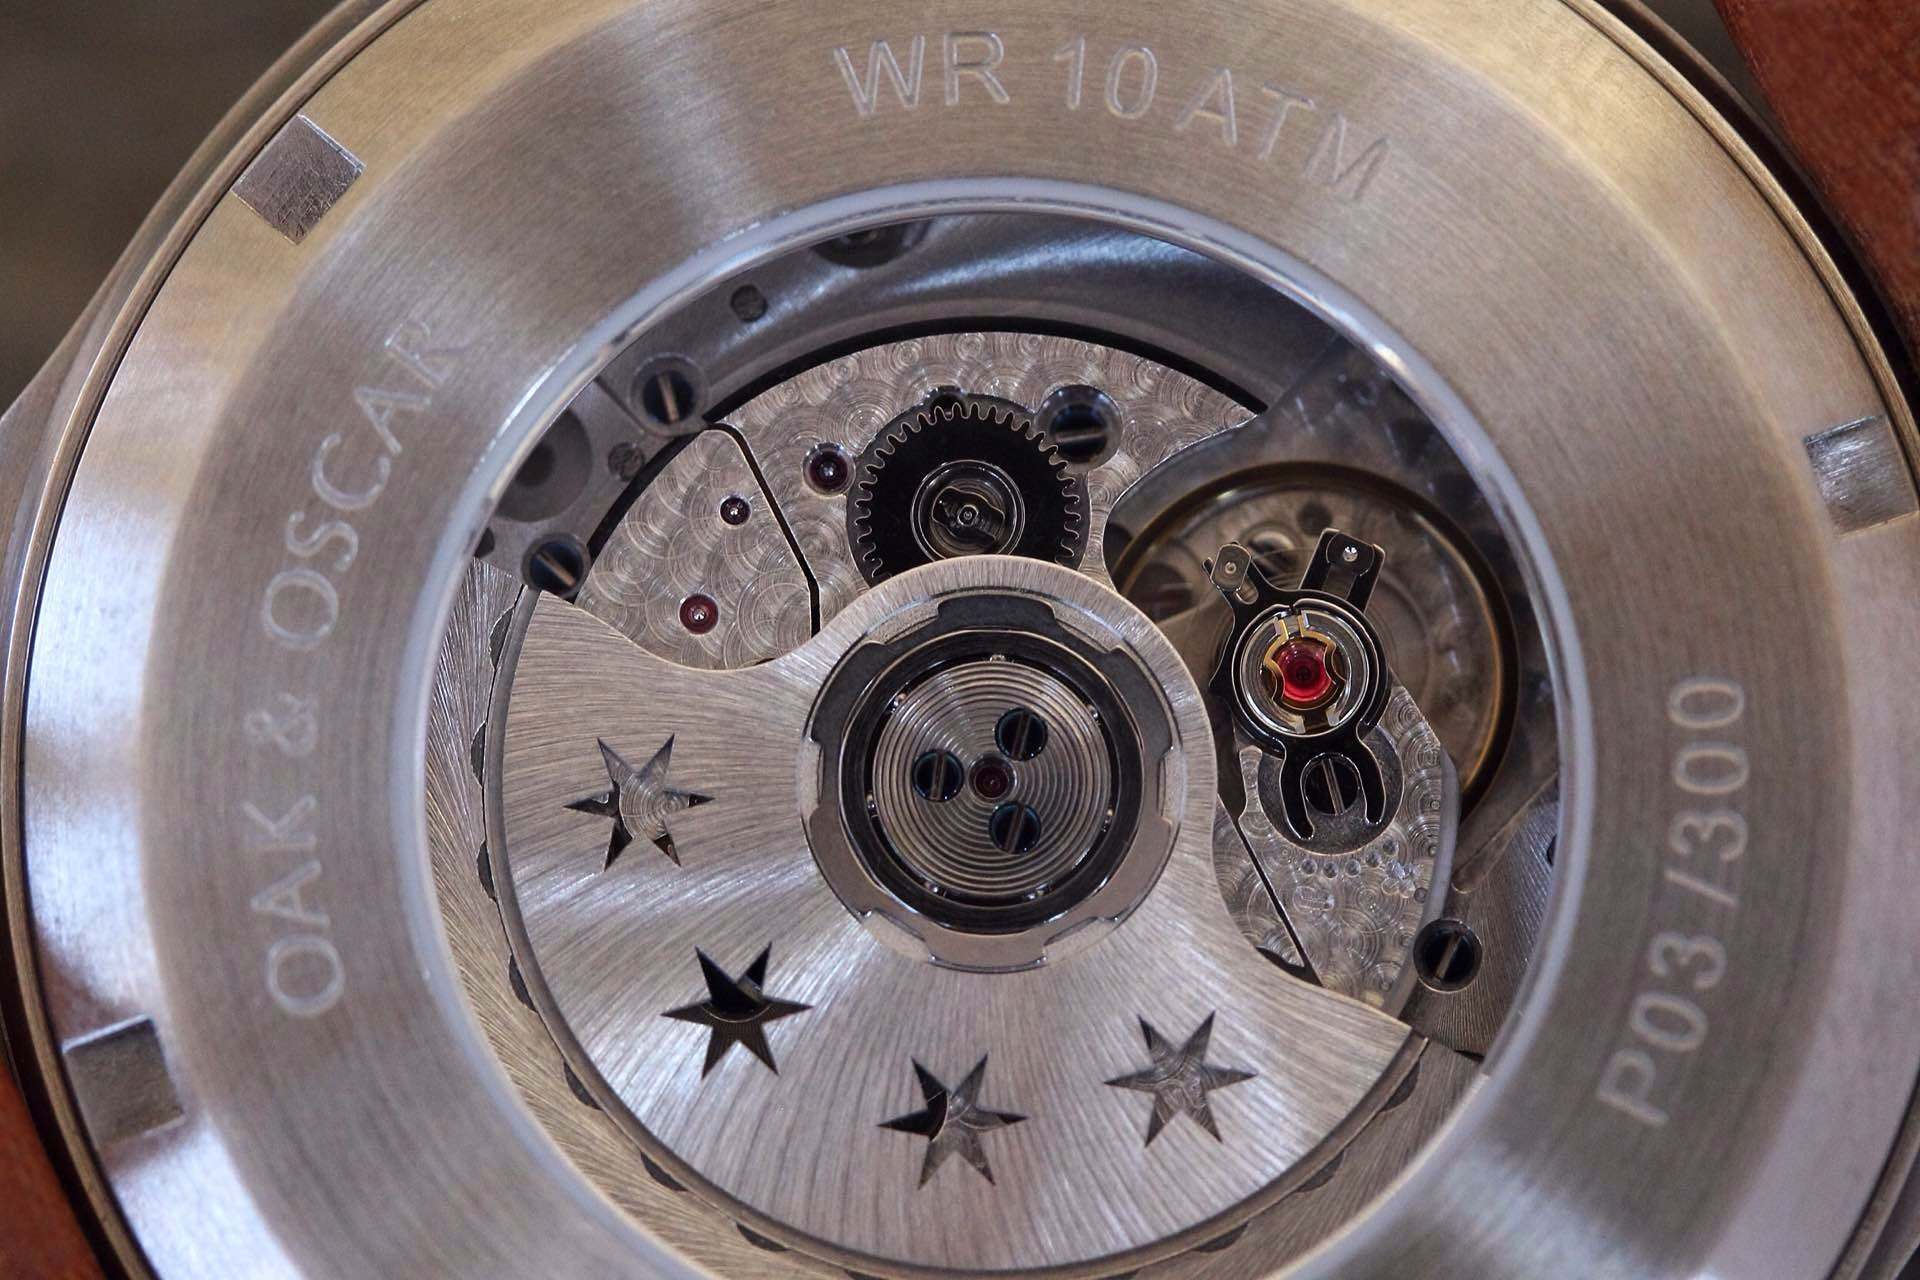 The customized Soprod A10 movement.